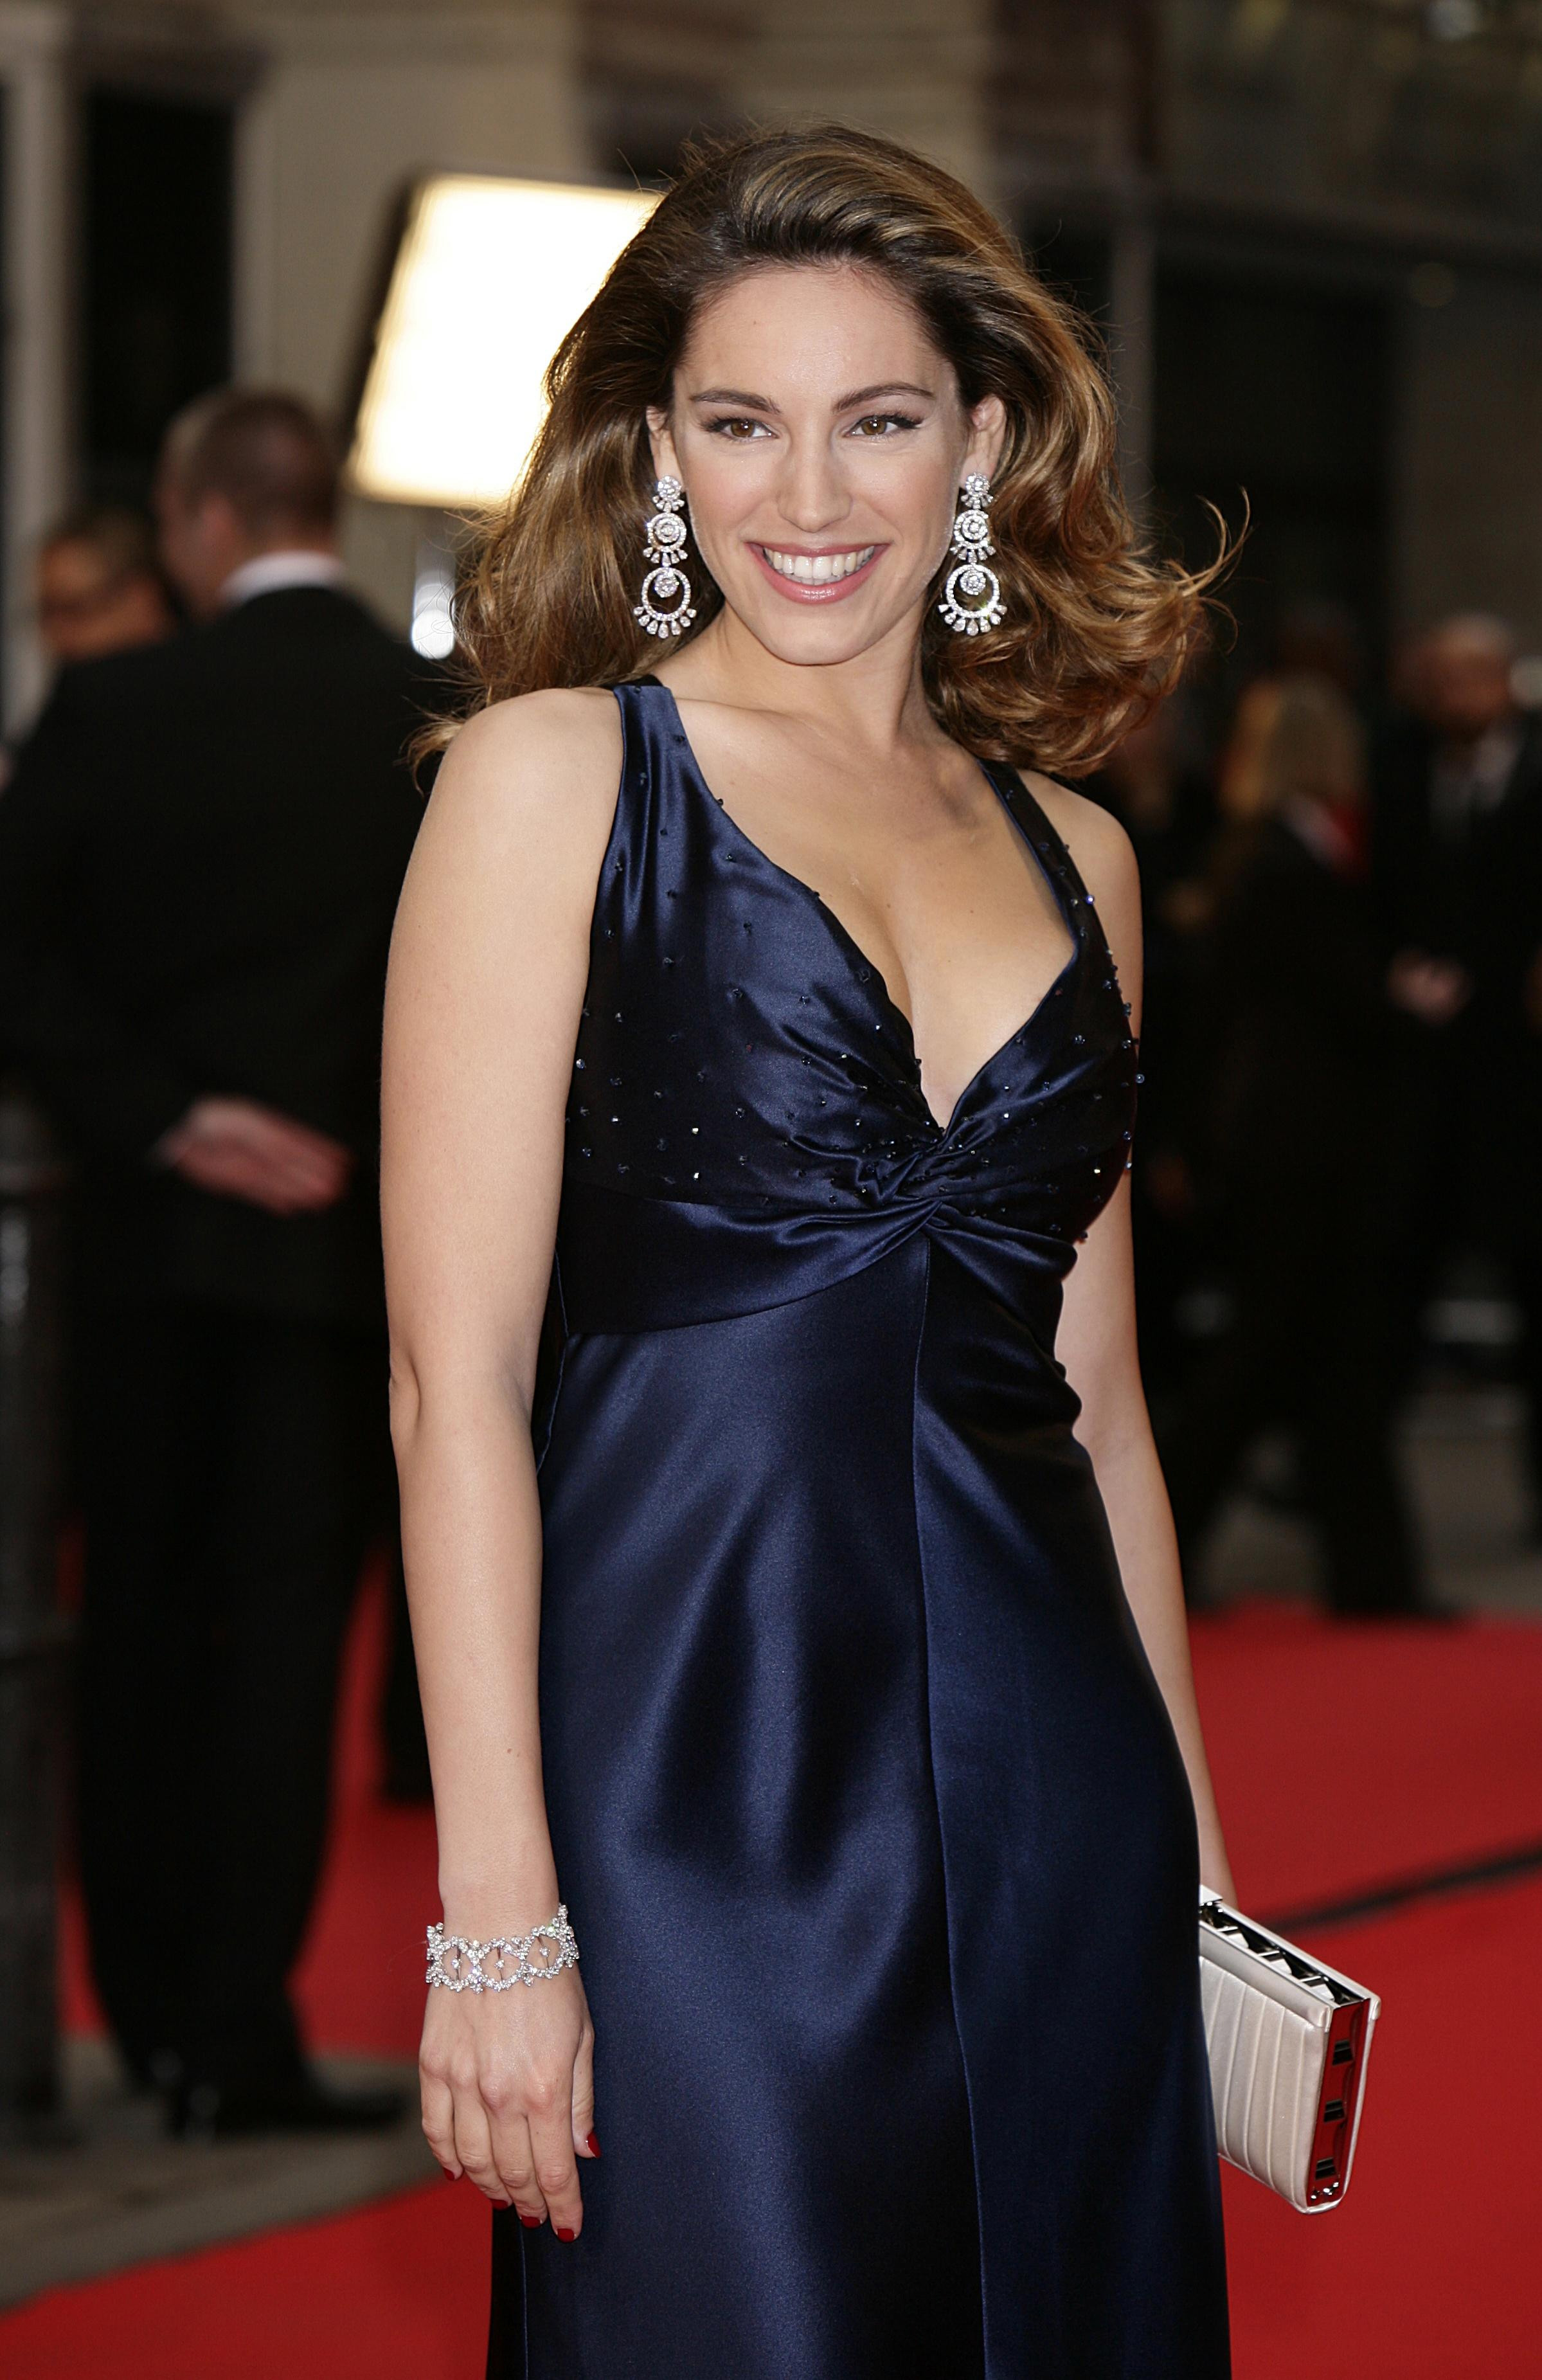 Kelly Brook: 'Ant and Dec got me sacked from BGT'